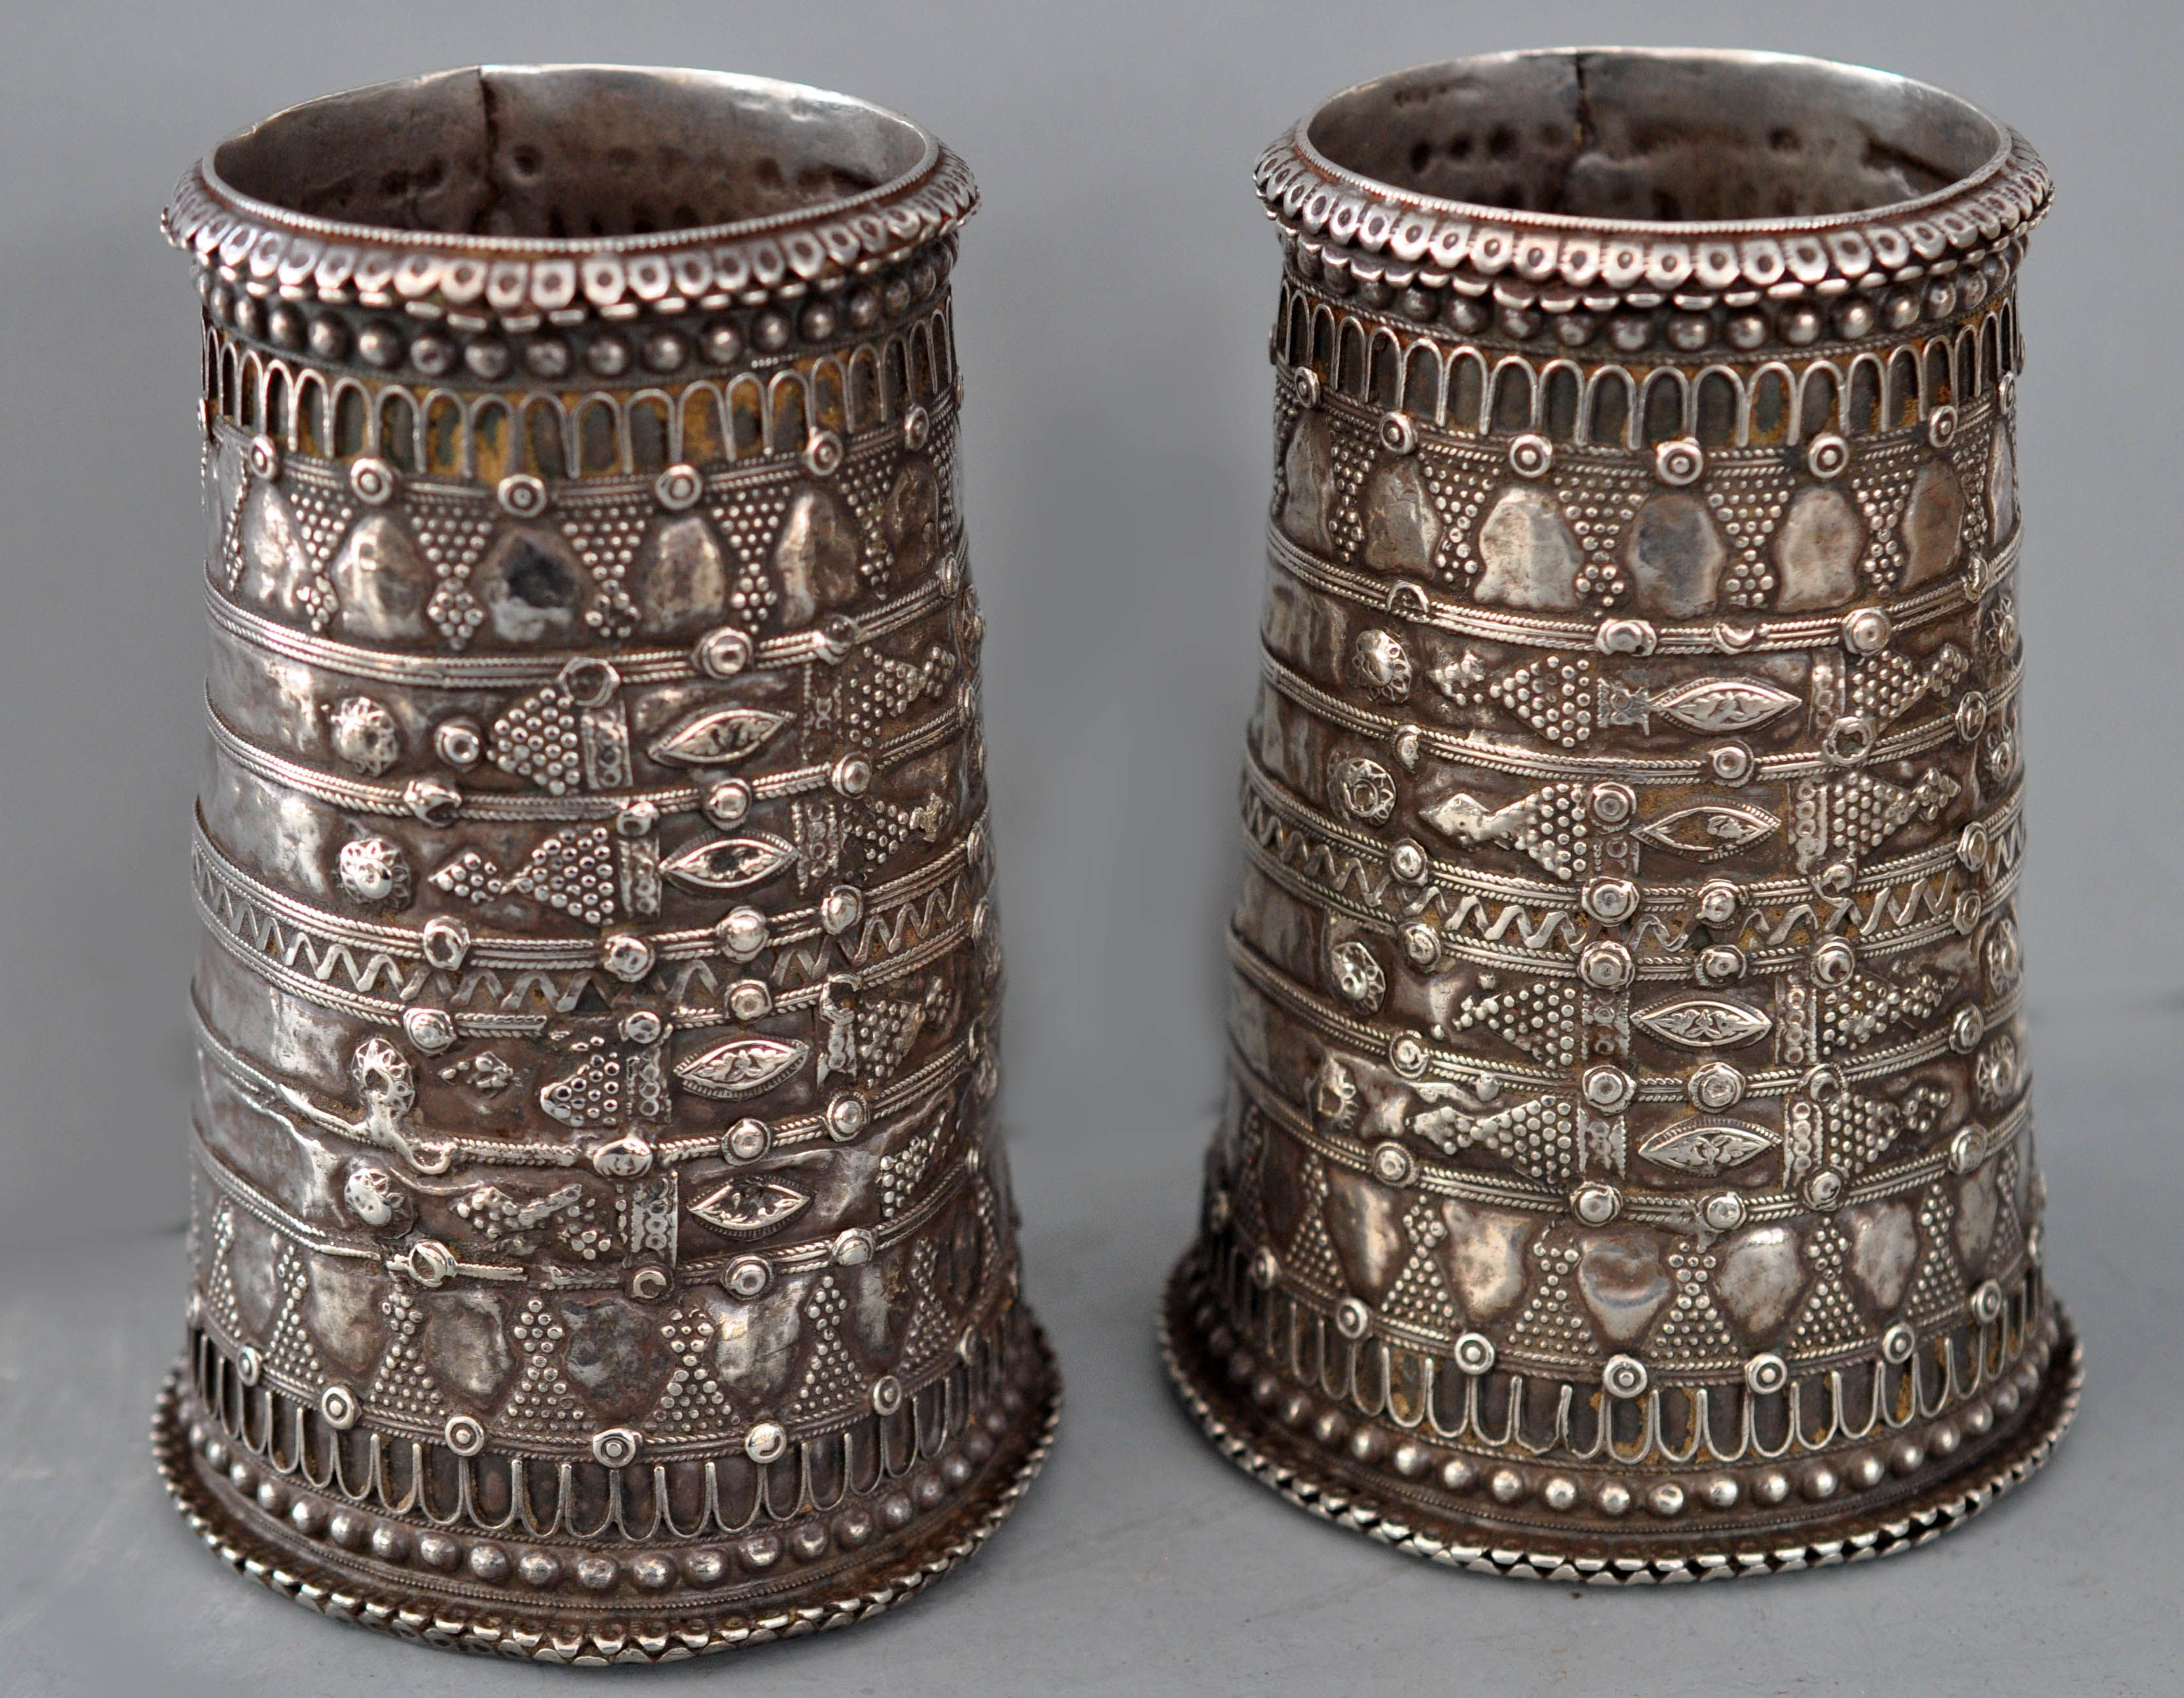 cuffs, with intricate applique lt 18th /early 19th c Rajasthan (private collection Linda Pastorino)